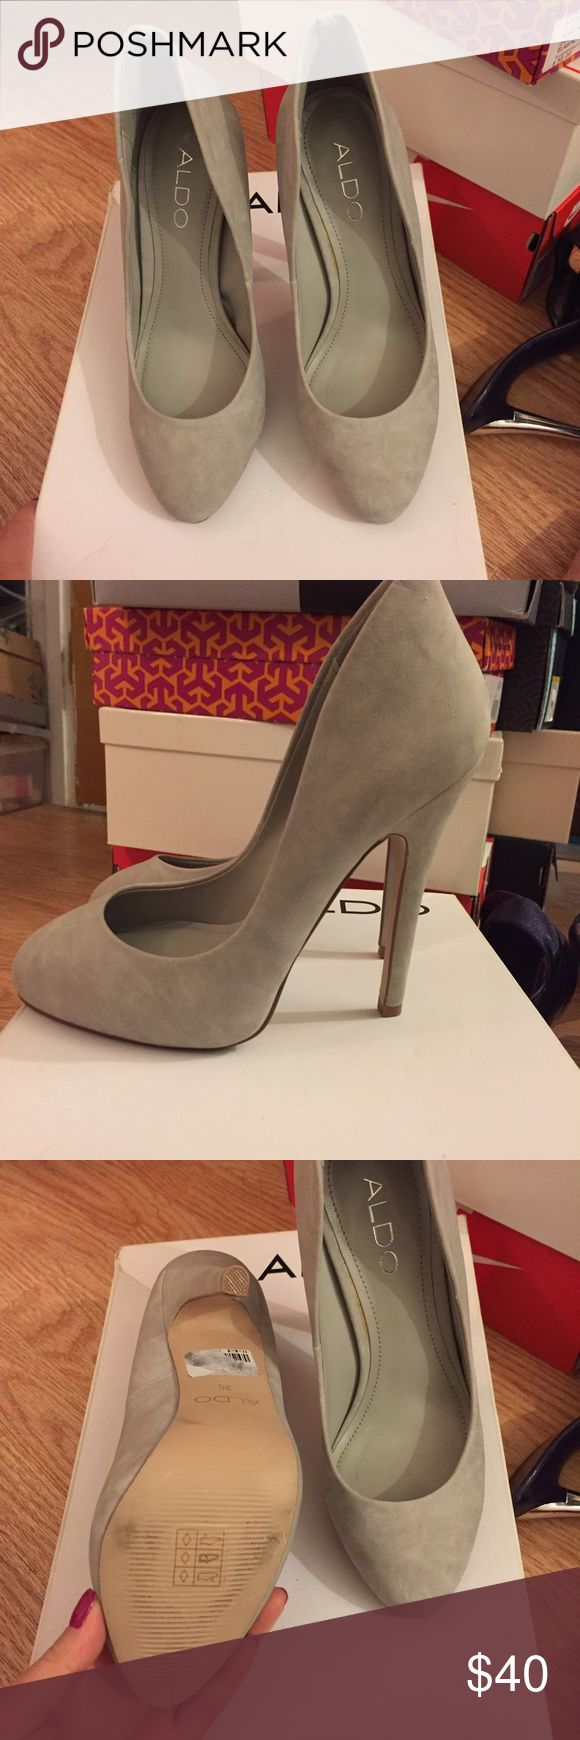 NEW Aldo heels This is a new with box Aldo heels in size 5. Only tried on. Aldo Shoes Heels